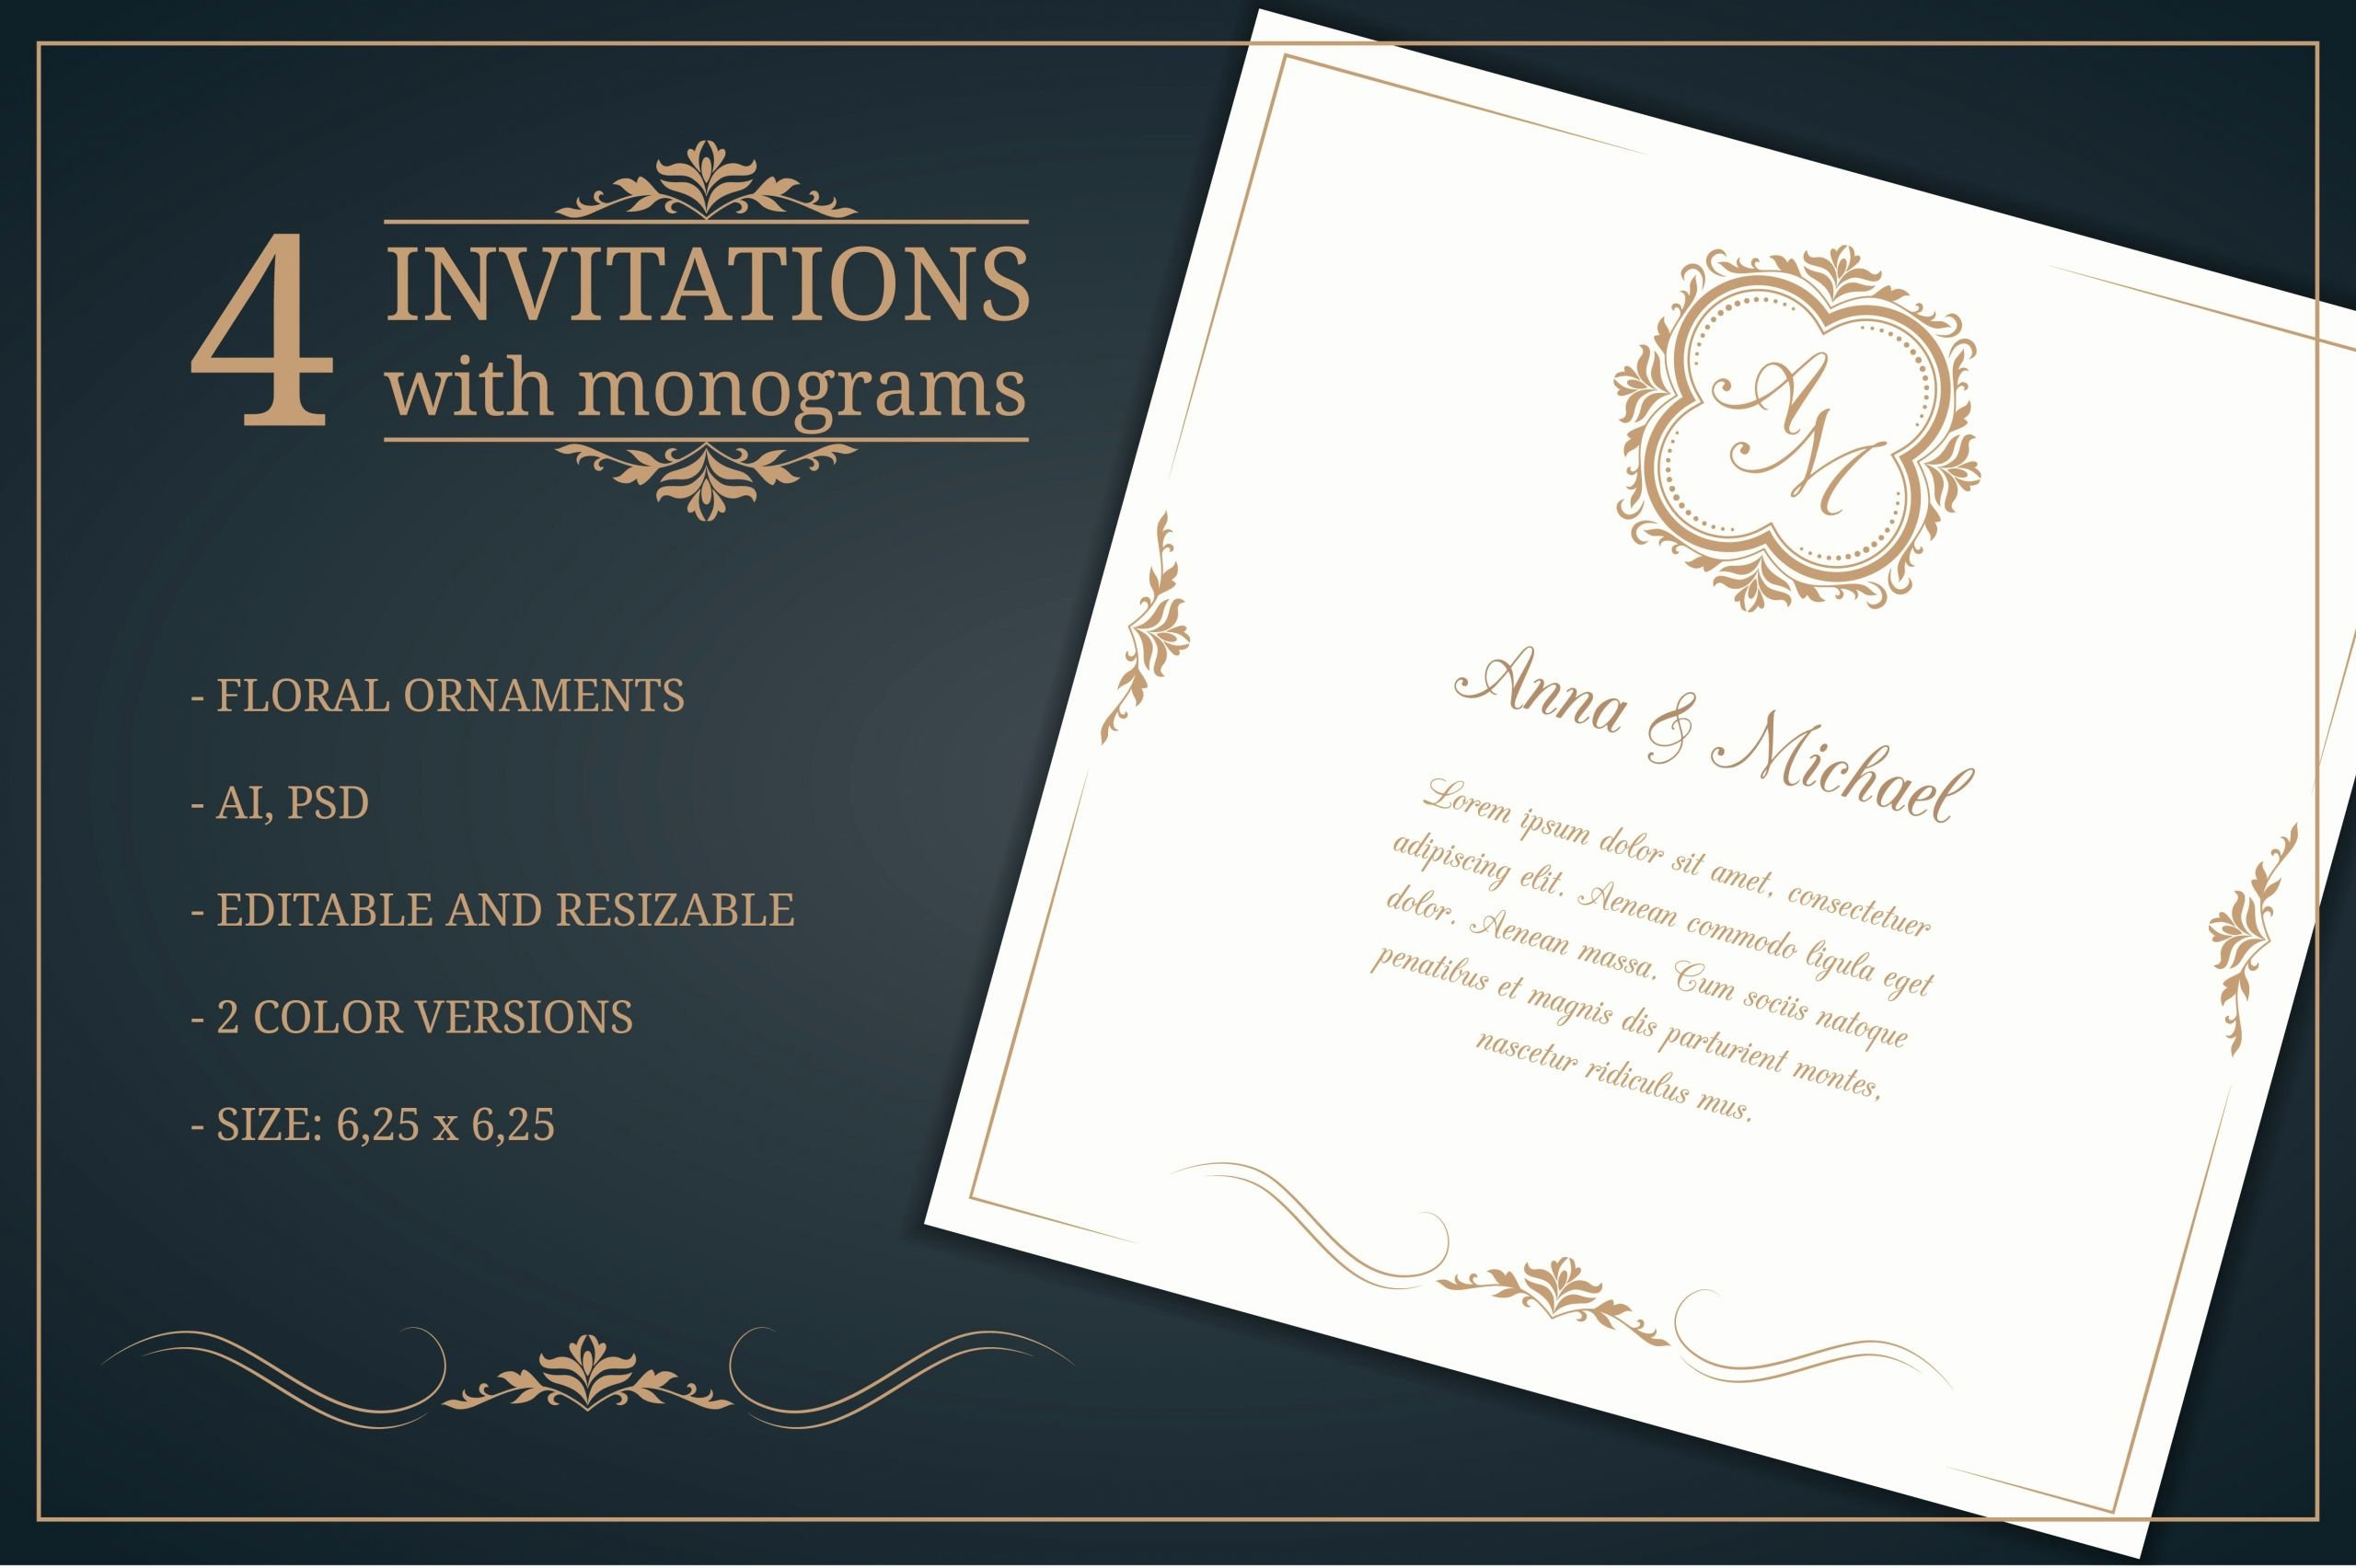 Free Wedding Invitation Template Awesome Wedding Invitations with Monograms Wedding Templates